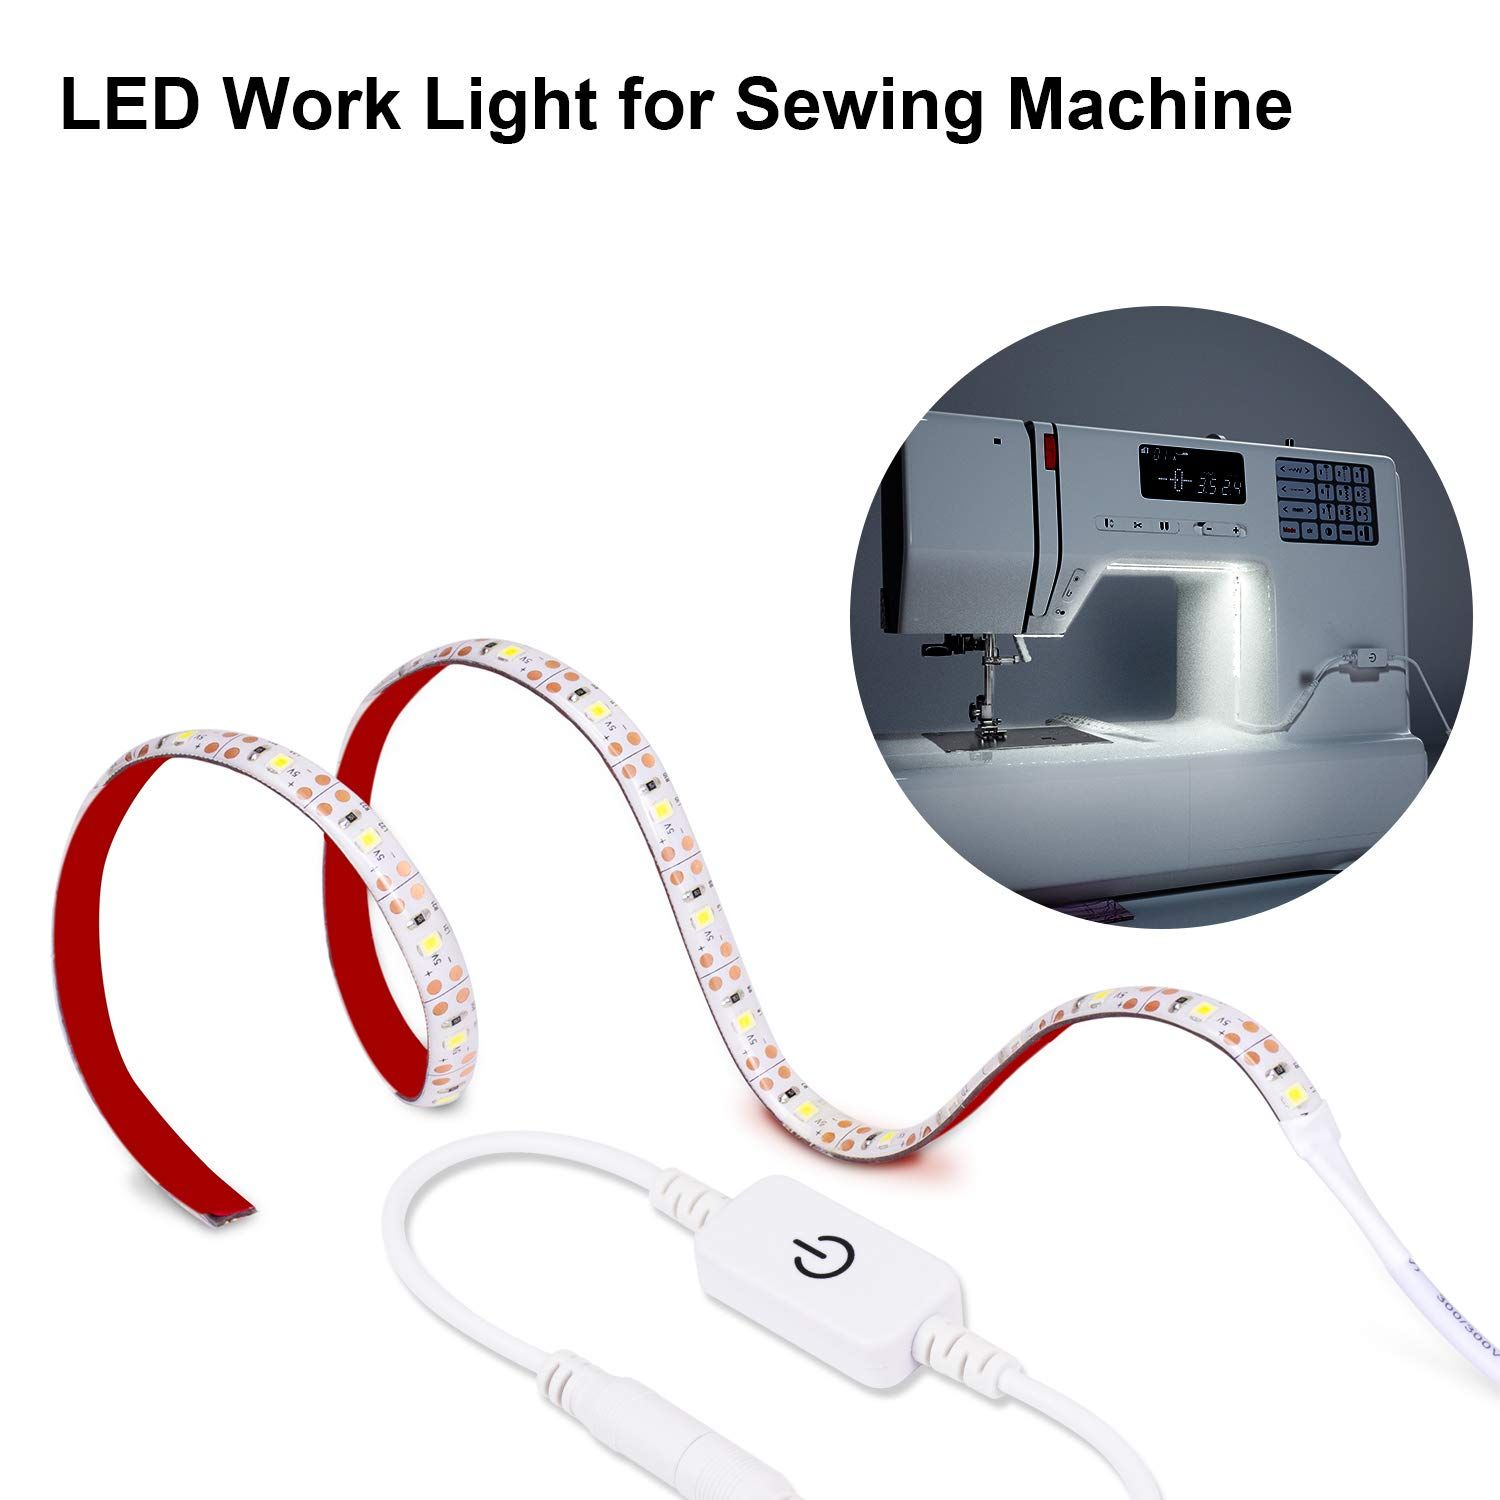 Sewing Machine Light,30 LED Lighting Strip kit with Touch dimmer and USB Power,Flexible Soft 3M Tape Natural Light White,Suitable for All Sewing Machines